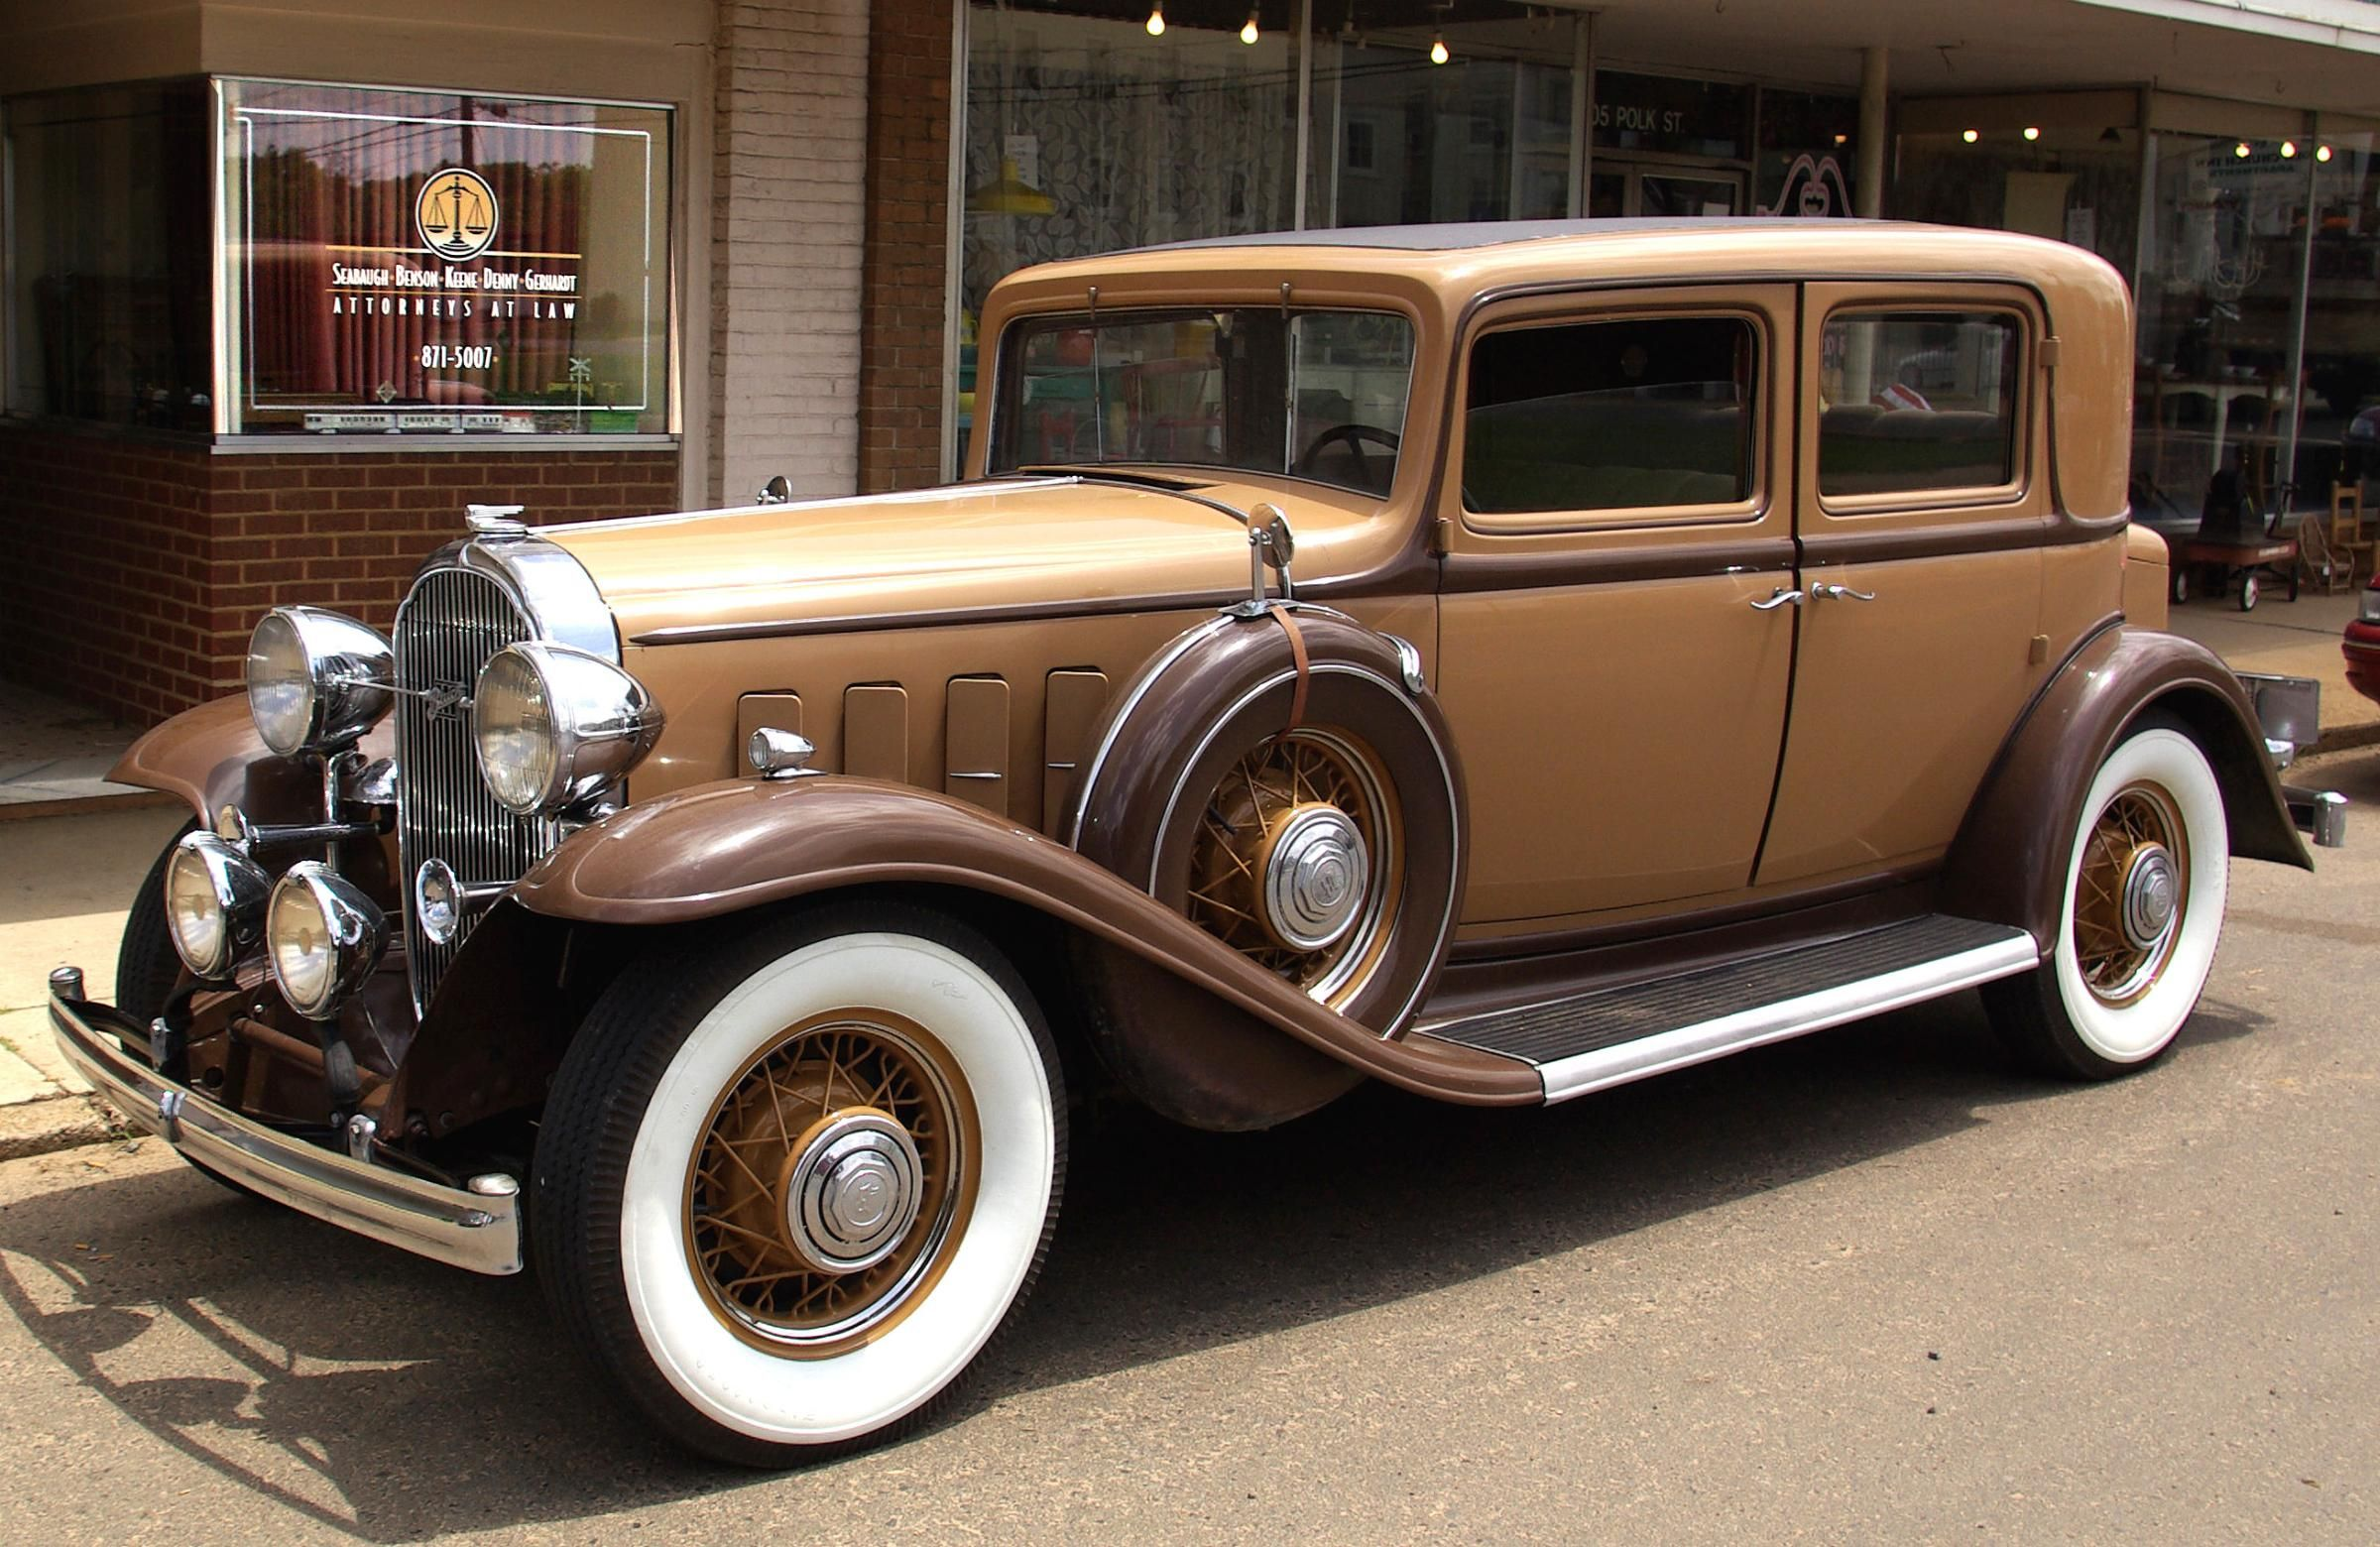 1932 Buick — Awaiting Restoration | Pinterest | Cars, Vintage and ...